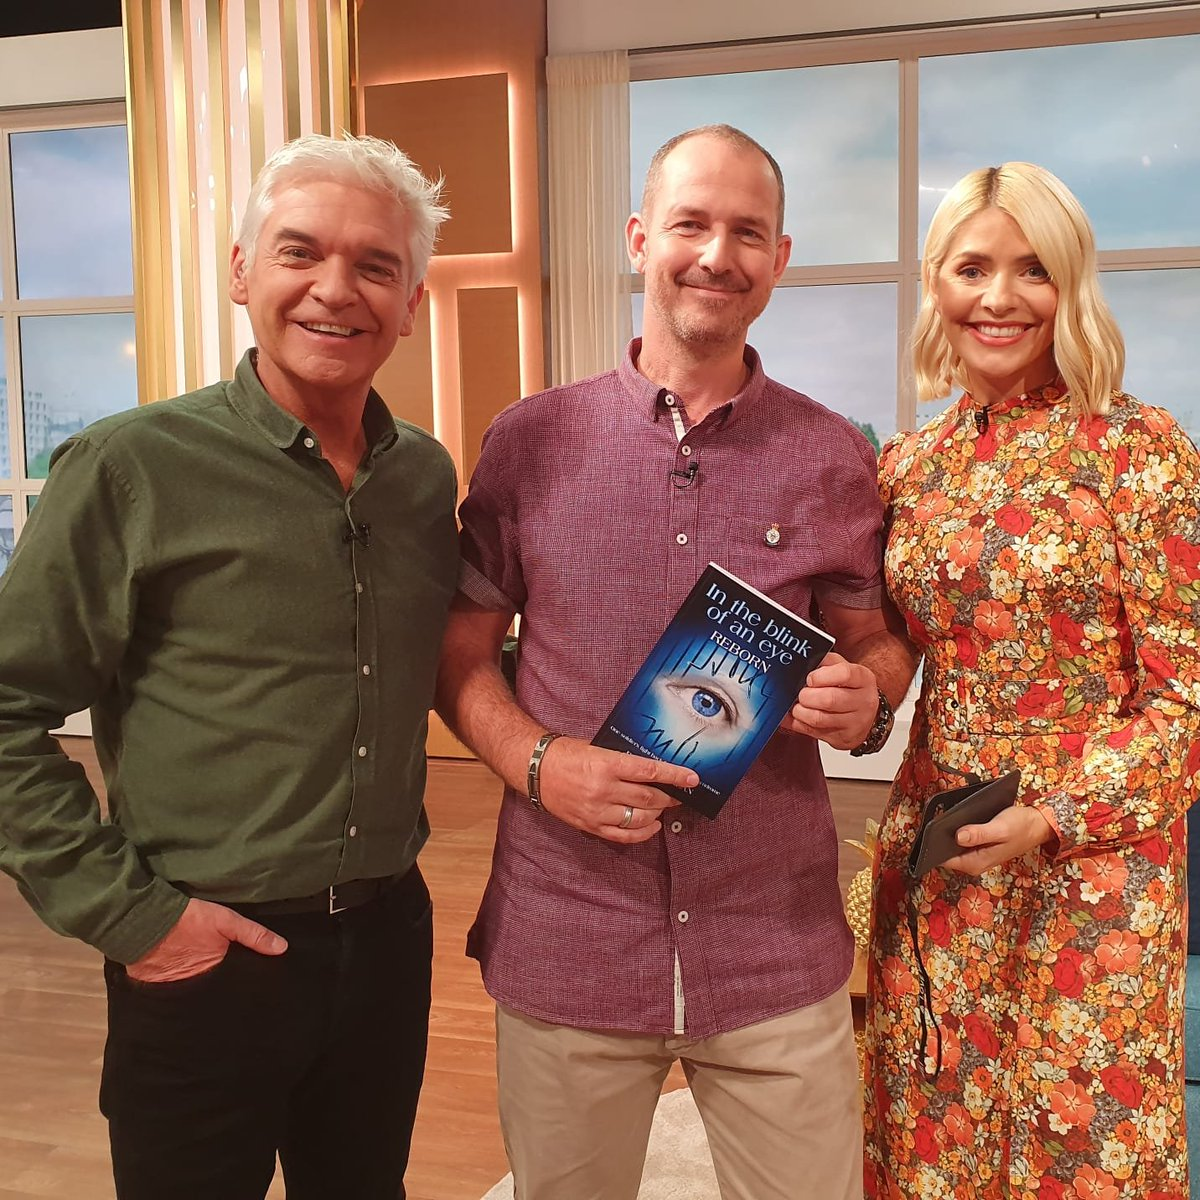 Me, with Phillip Schofield and Holly Willoughby at ITV studios recently where I was interviewed on #ThisMorning Thanks for your hospitality, guys! youtube.com/watch?v=I6QXSL…